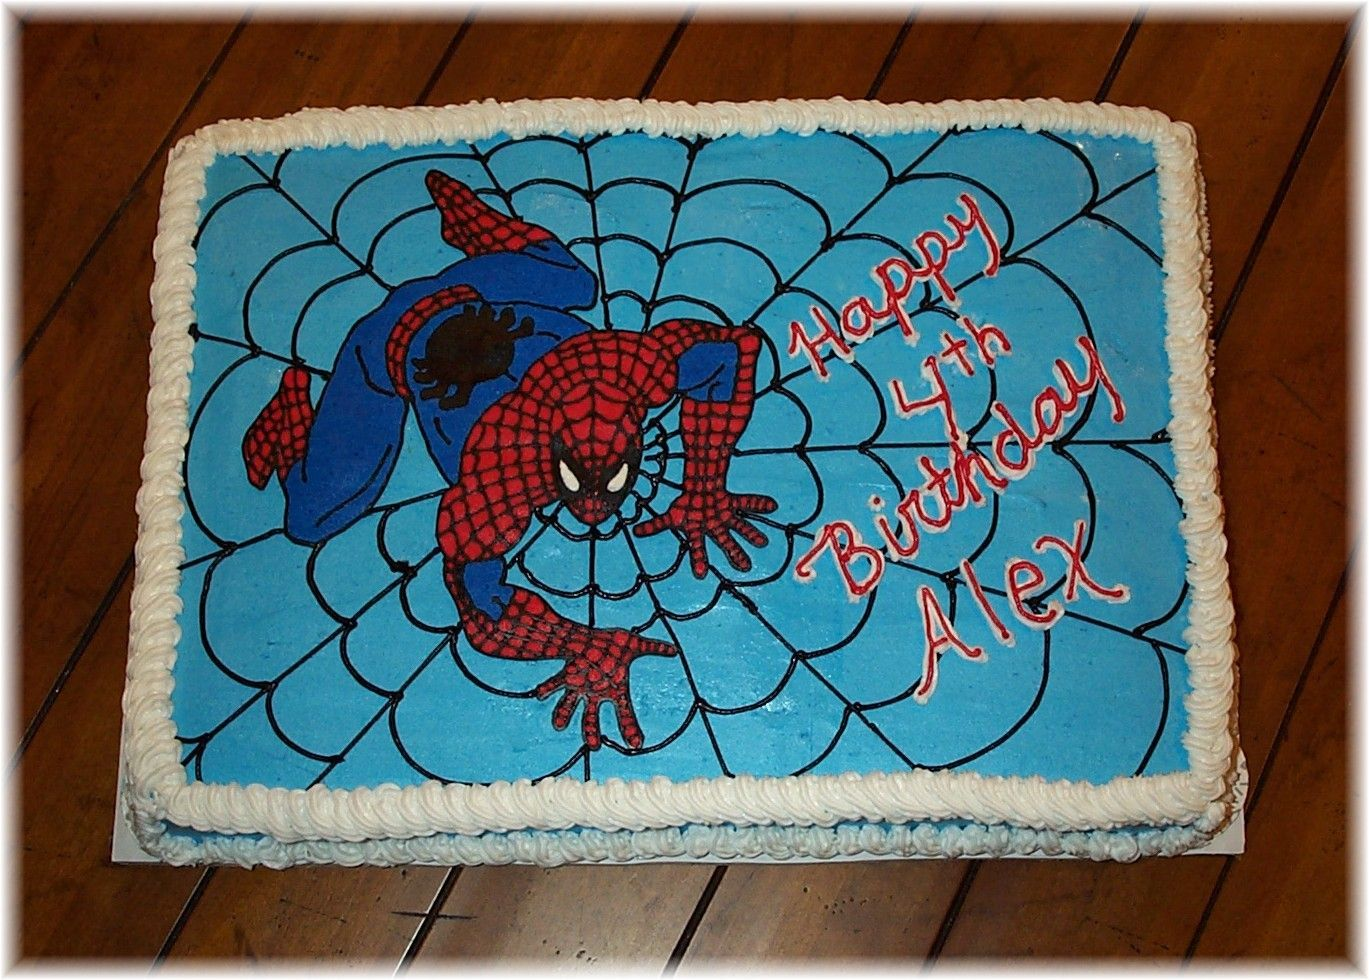 spiderman cake fbct full sheet cake 1 2 choc 1 2 yellow butter fun to make and the birthday. Black Bedroom Furniture Sets. Home Design Ideas